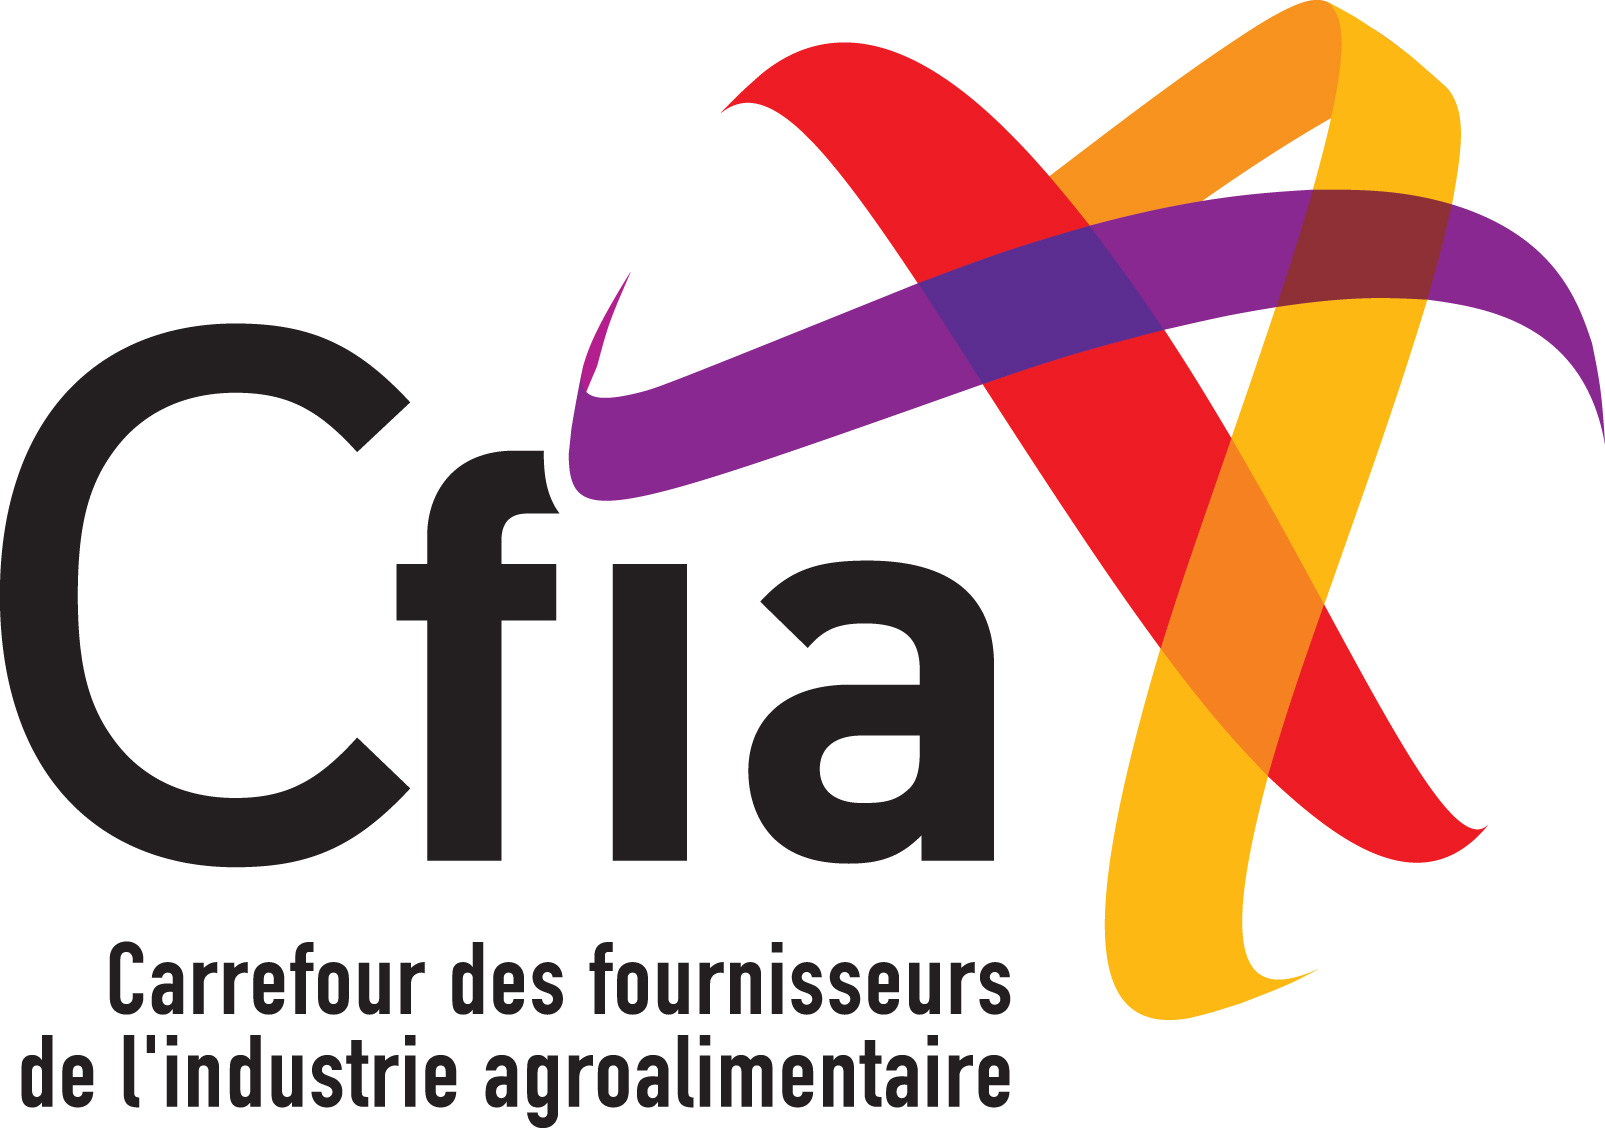 Innovative industrial filters and sieves at CFIA 2014